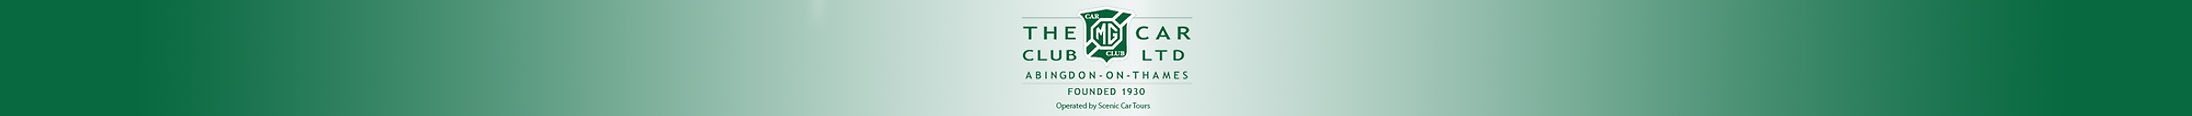 MG Box Green to white banner v3.jpg